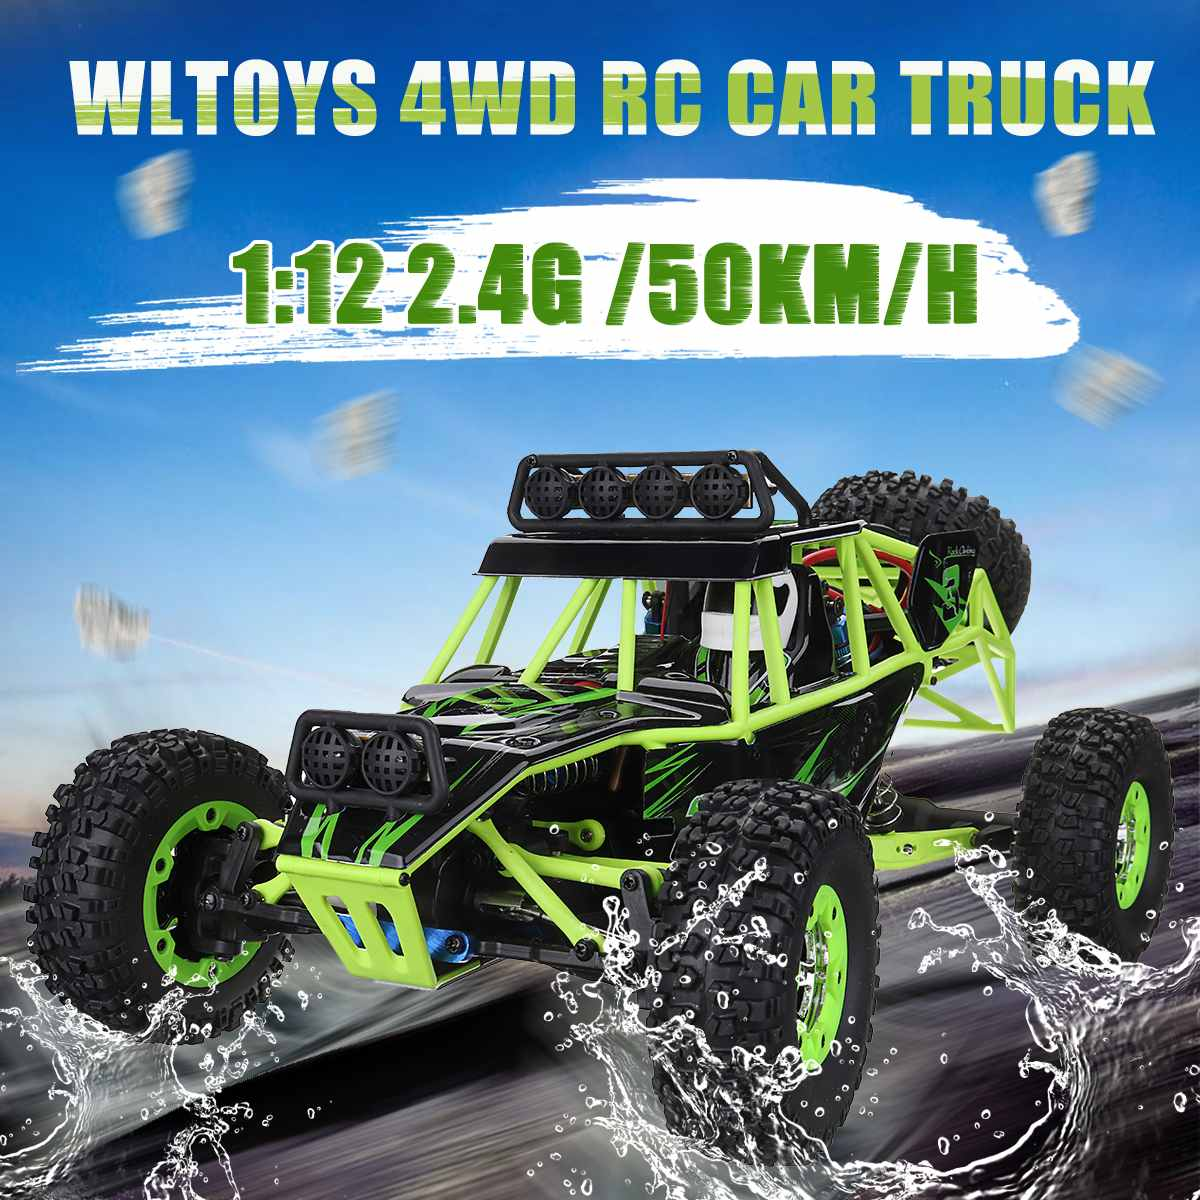 Fernbedienung Spielzeug Wltoys 1:12 2,4g 4wd Rock Rc Alloy Crawler Rc Klettern Racing Trucks High Speed 4ch Fernbedienung Auto Off road Crawler